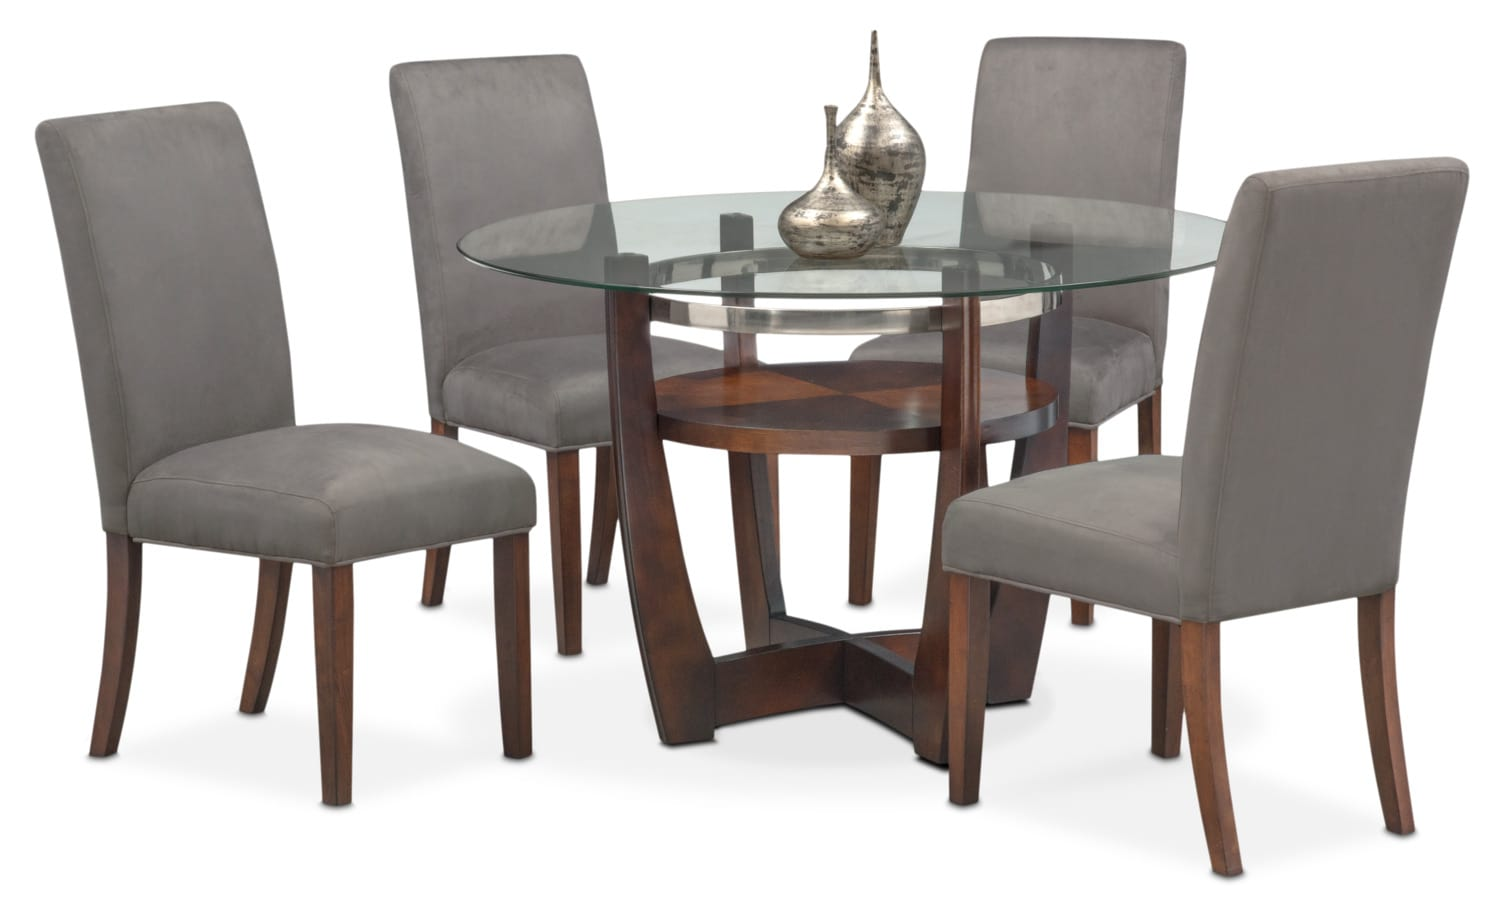 Dining Room Furniture - Alcove Table and 4 Side Chairs - Gray and Merlot